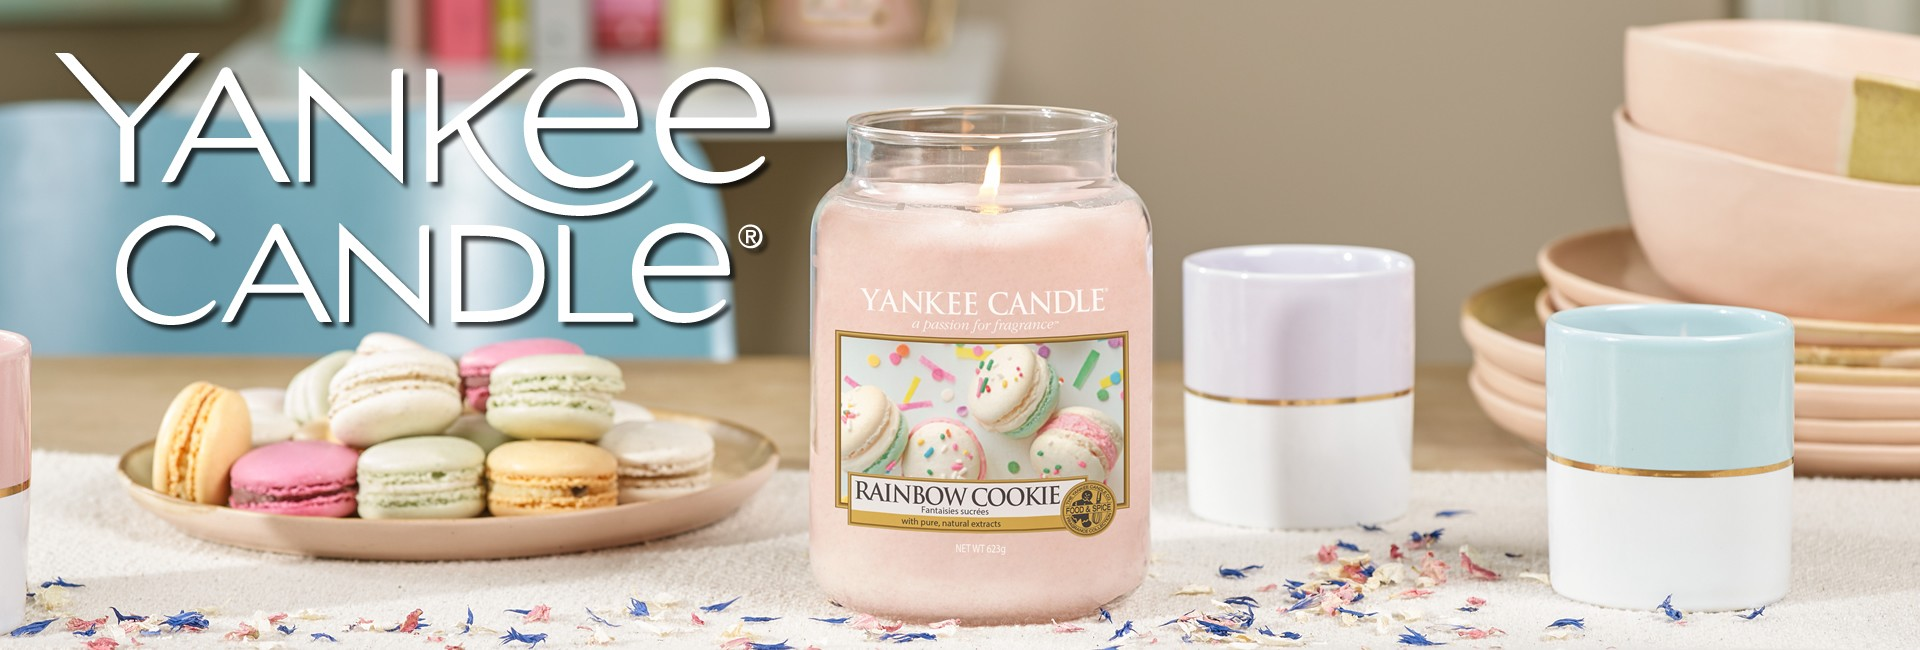 Welcome Yankee Candle!